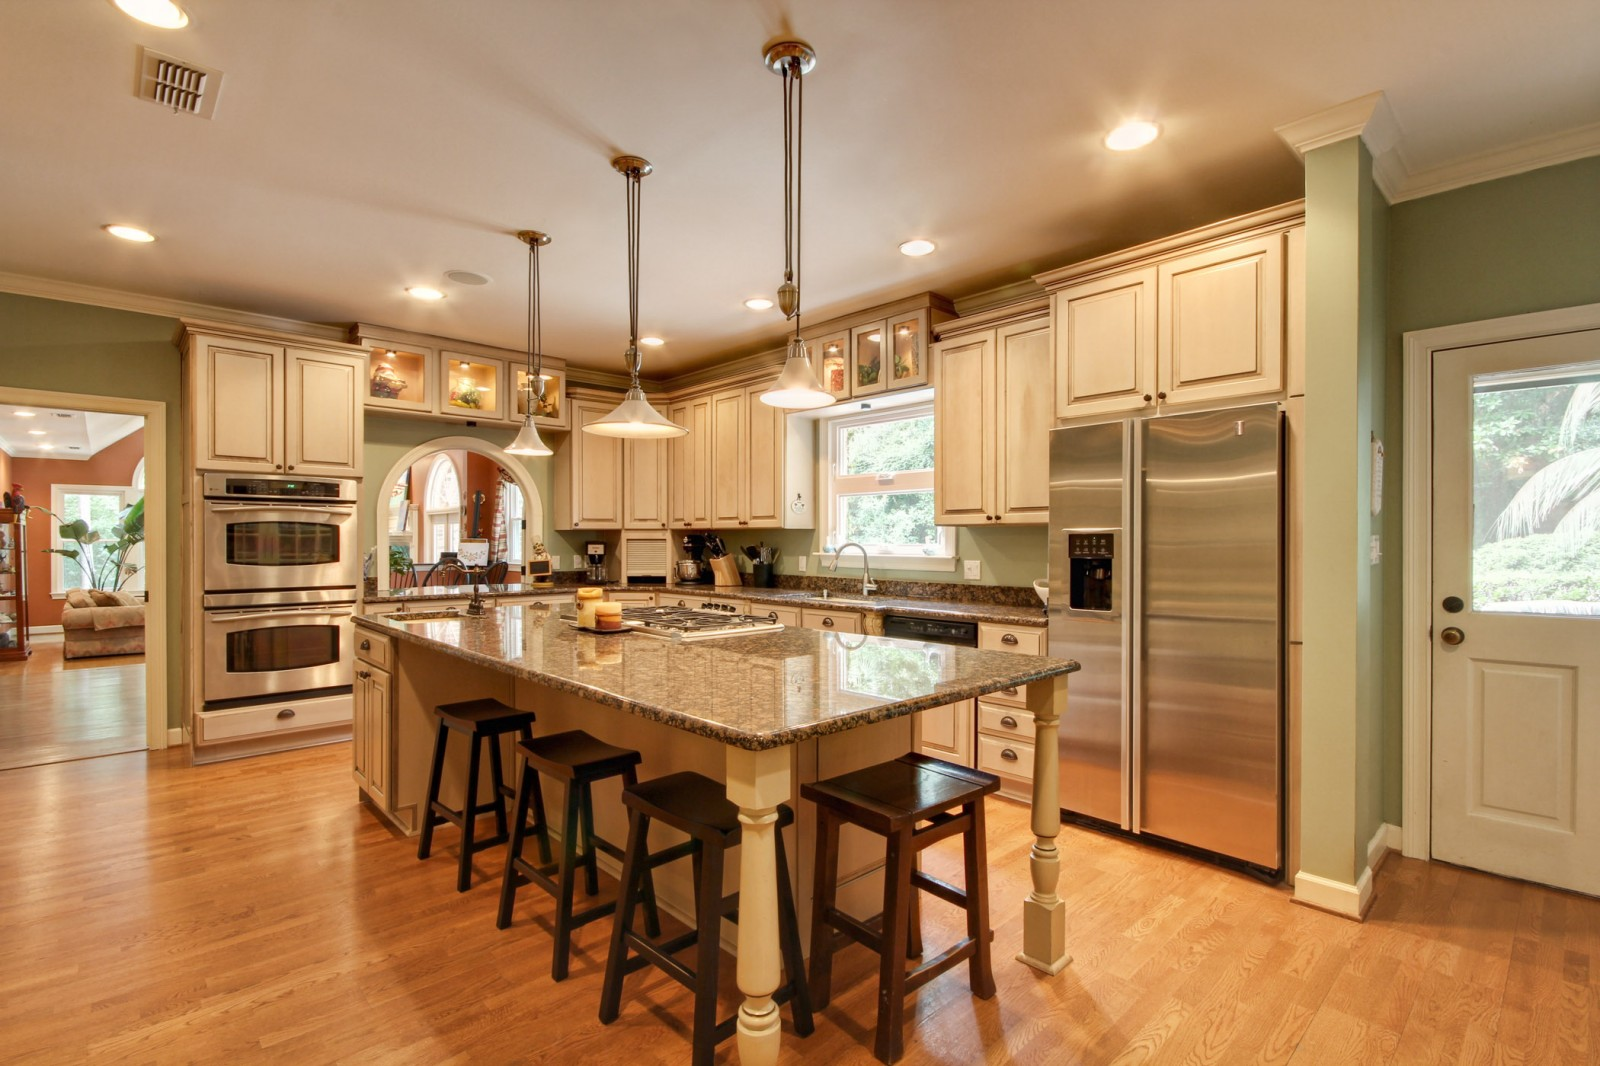 Kitchens Renovations Custom Kitchens Charlotte Remodeling Charlotte Renovations